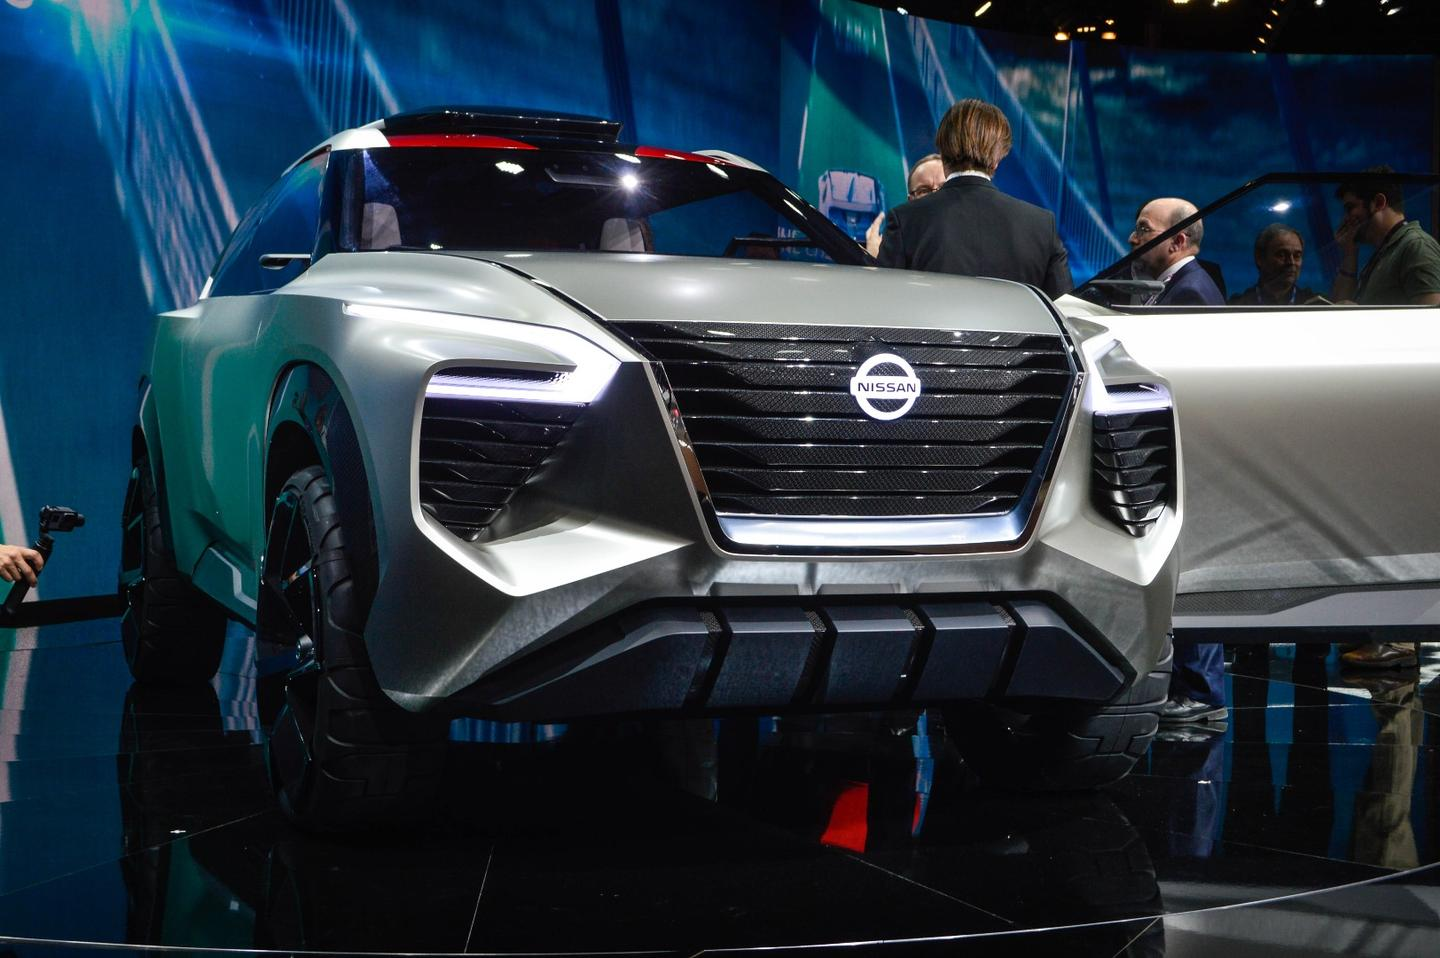 Nissan explores the future of SUVs with the Xmotion concept